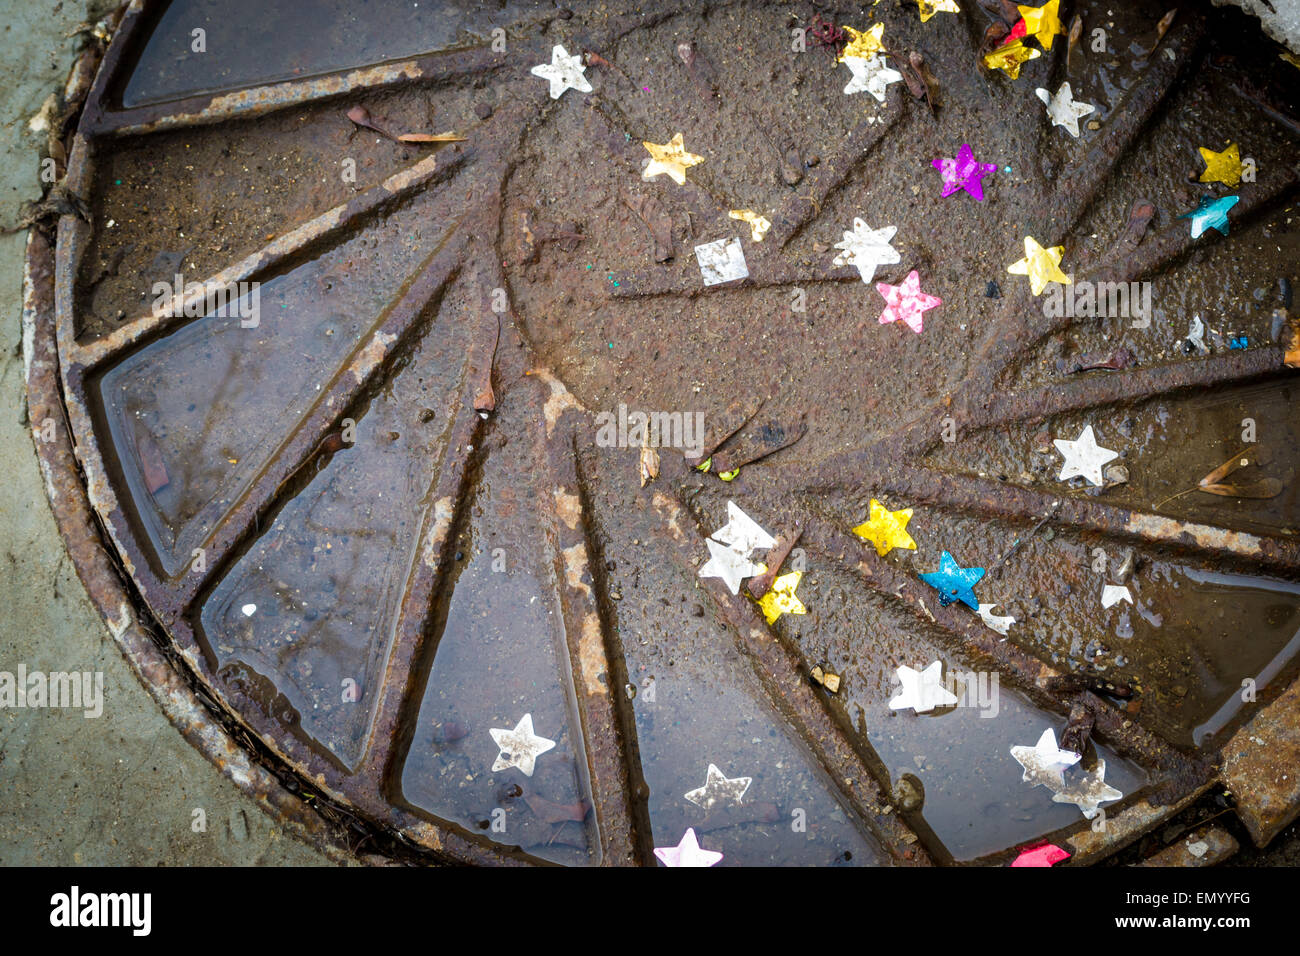 Multicoloured stars sink into a sewer manhole cover covered in rain - Stock Image